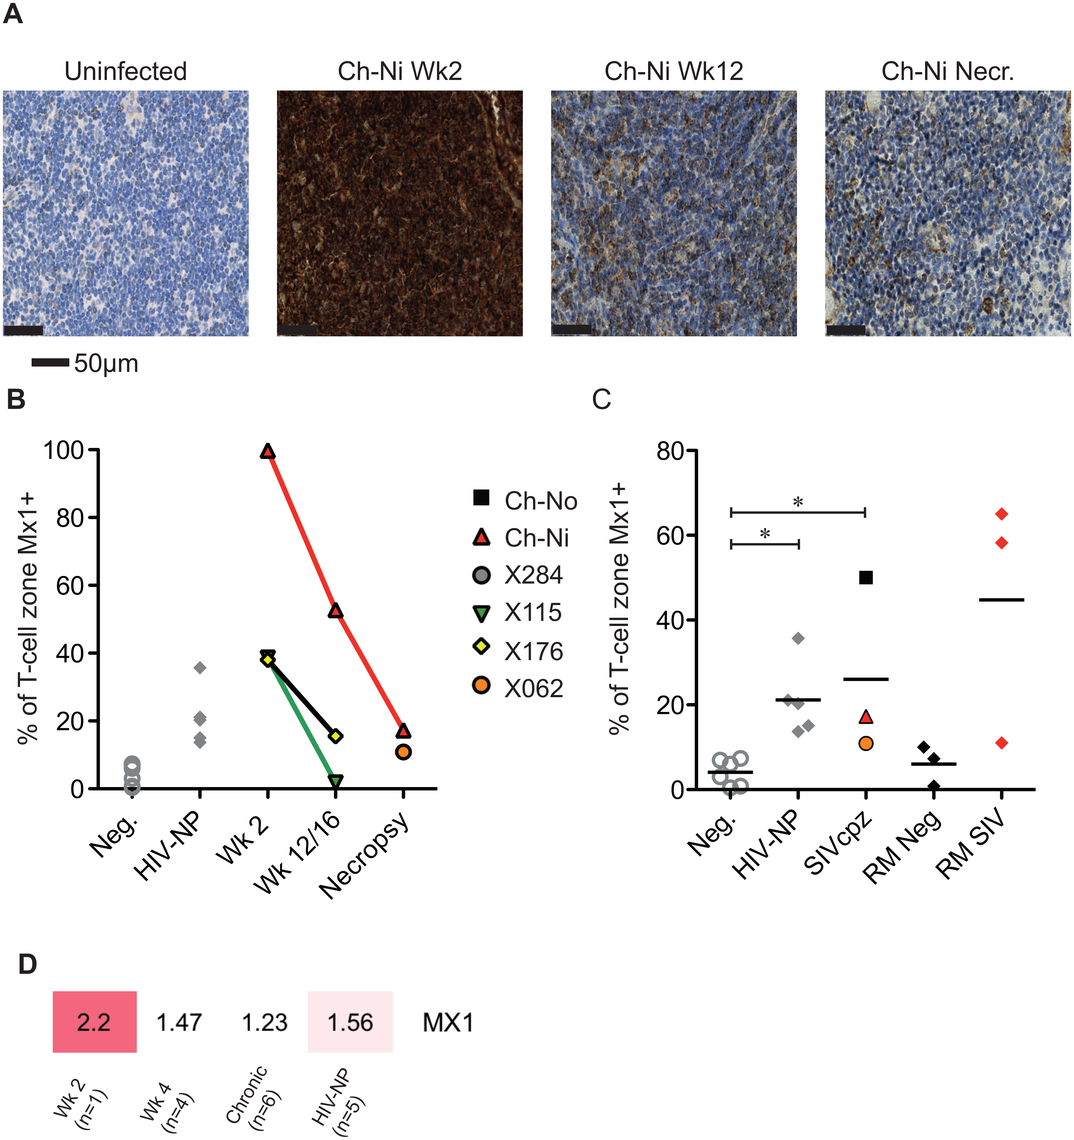 Analysis of Mx1 expression in the lymph nodes of SIVcpz infected chimpanzees.